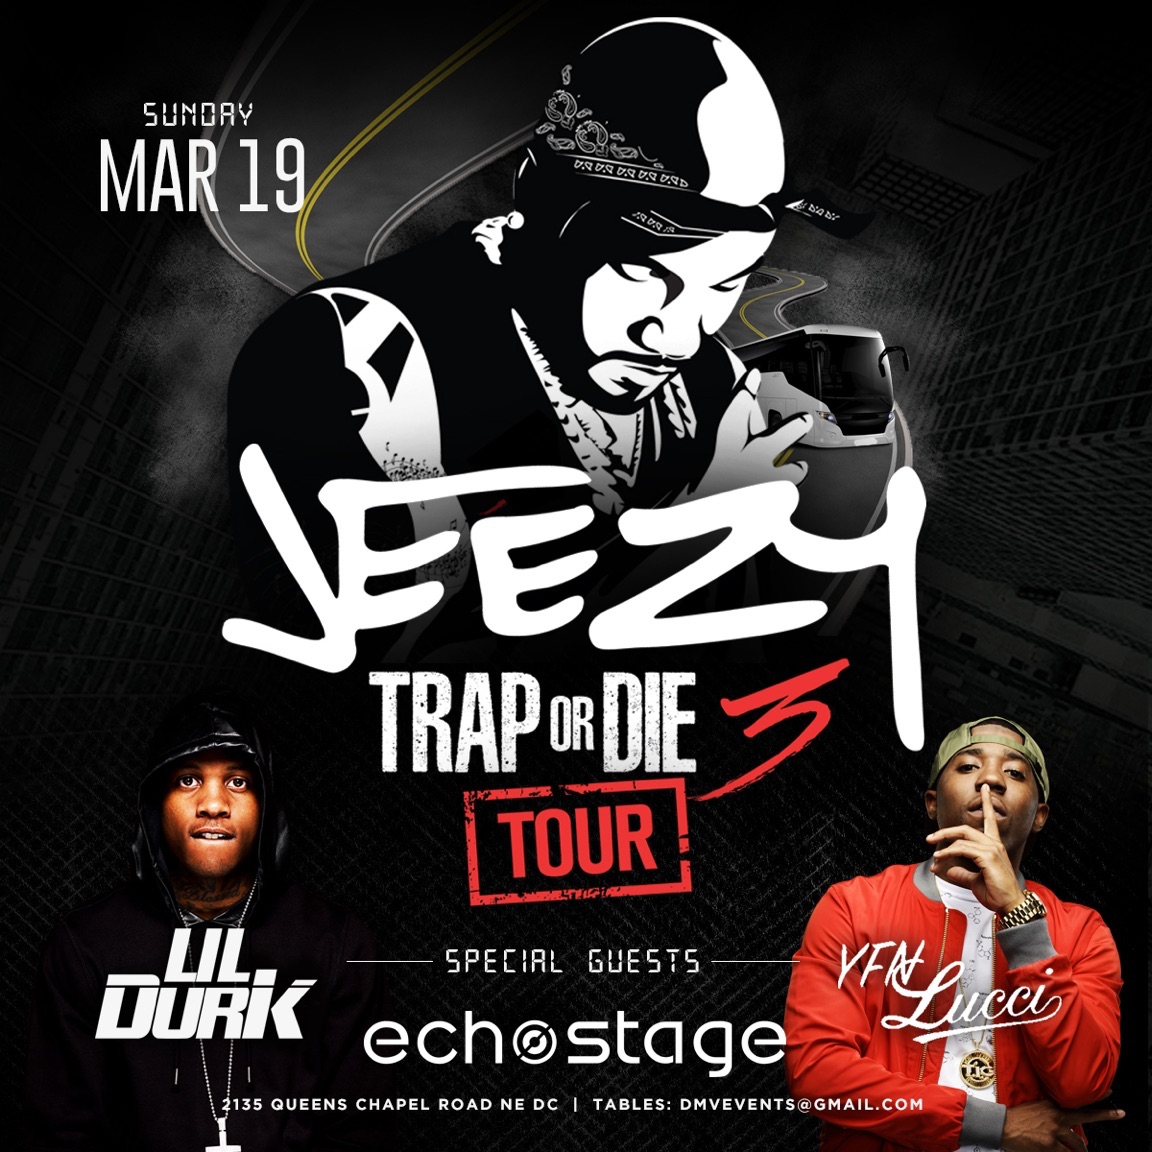 93.9 WKYS Presents The Trap Or Die 3 Tour With Young Jeezy, Lil Durk & YFN Lucci